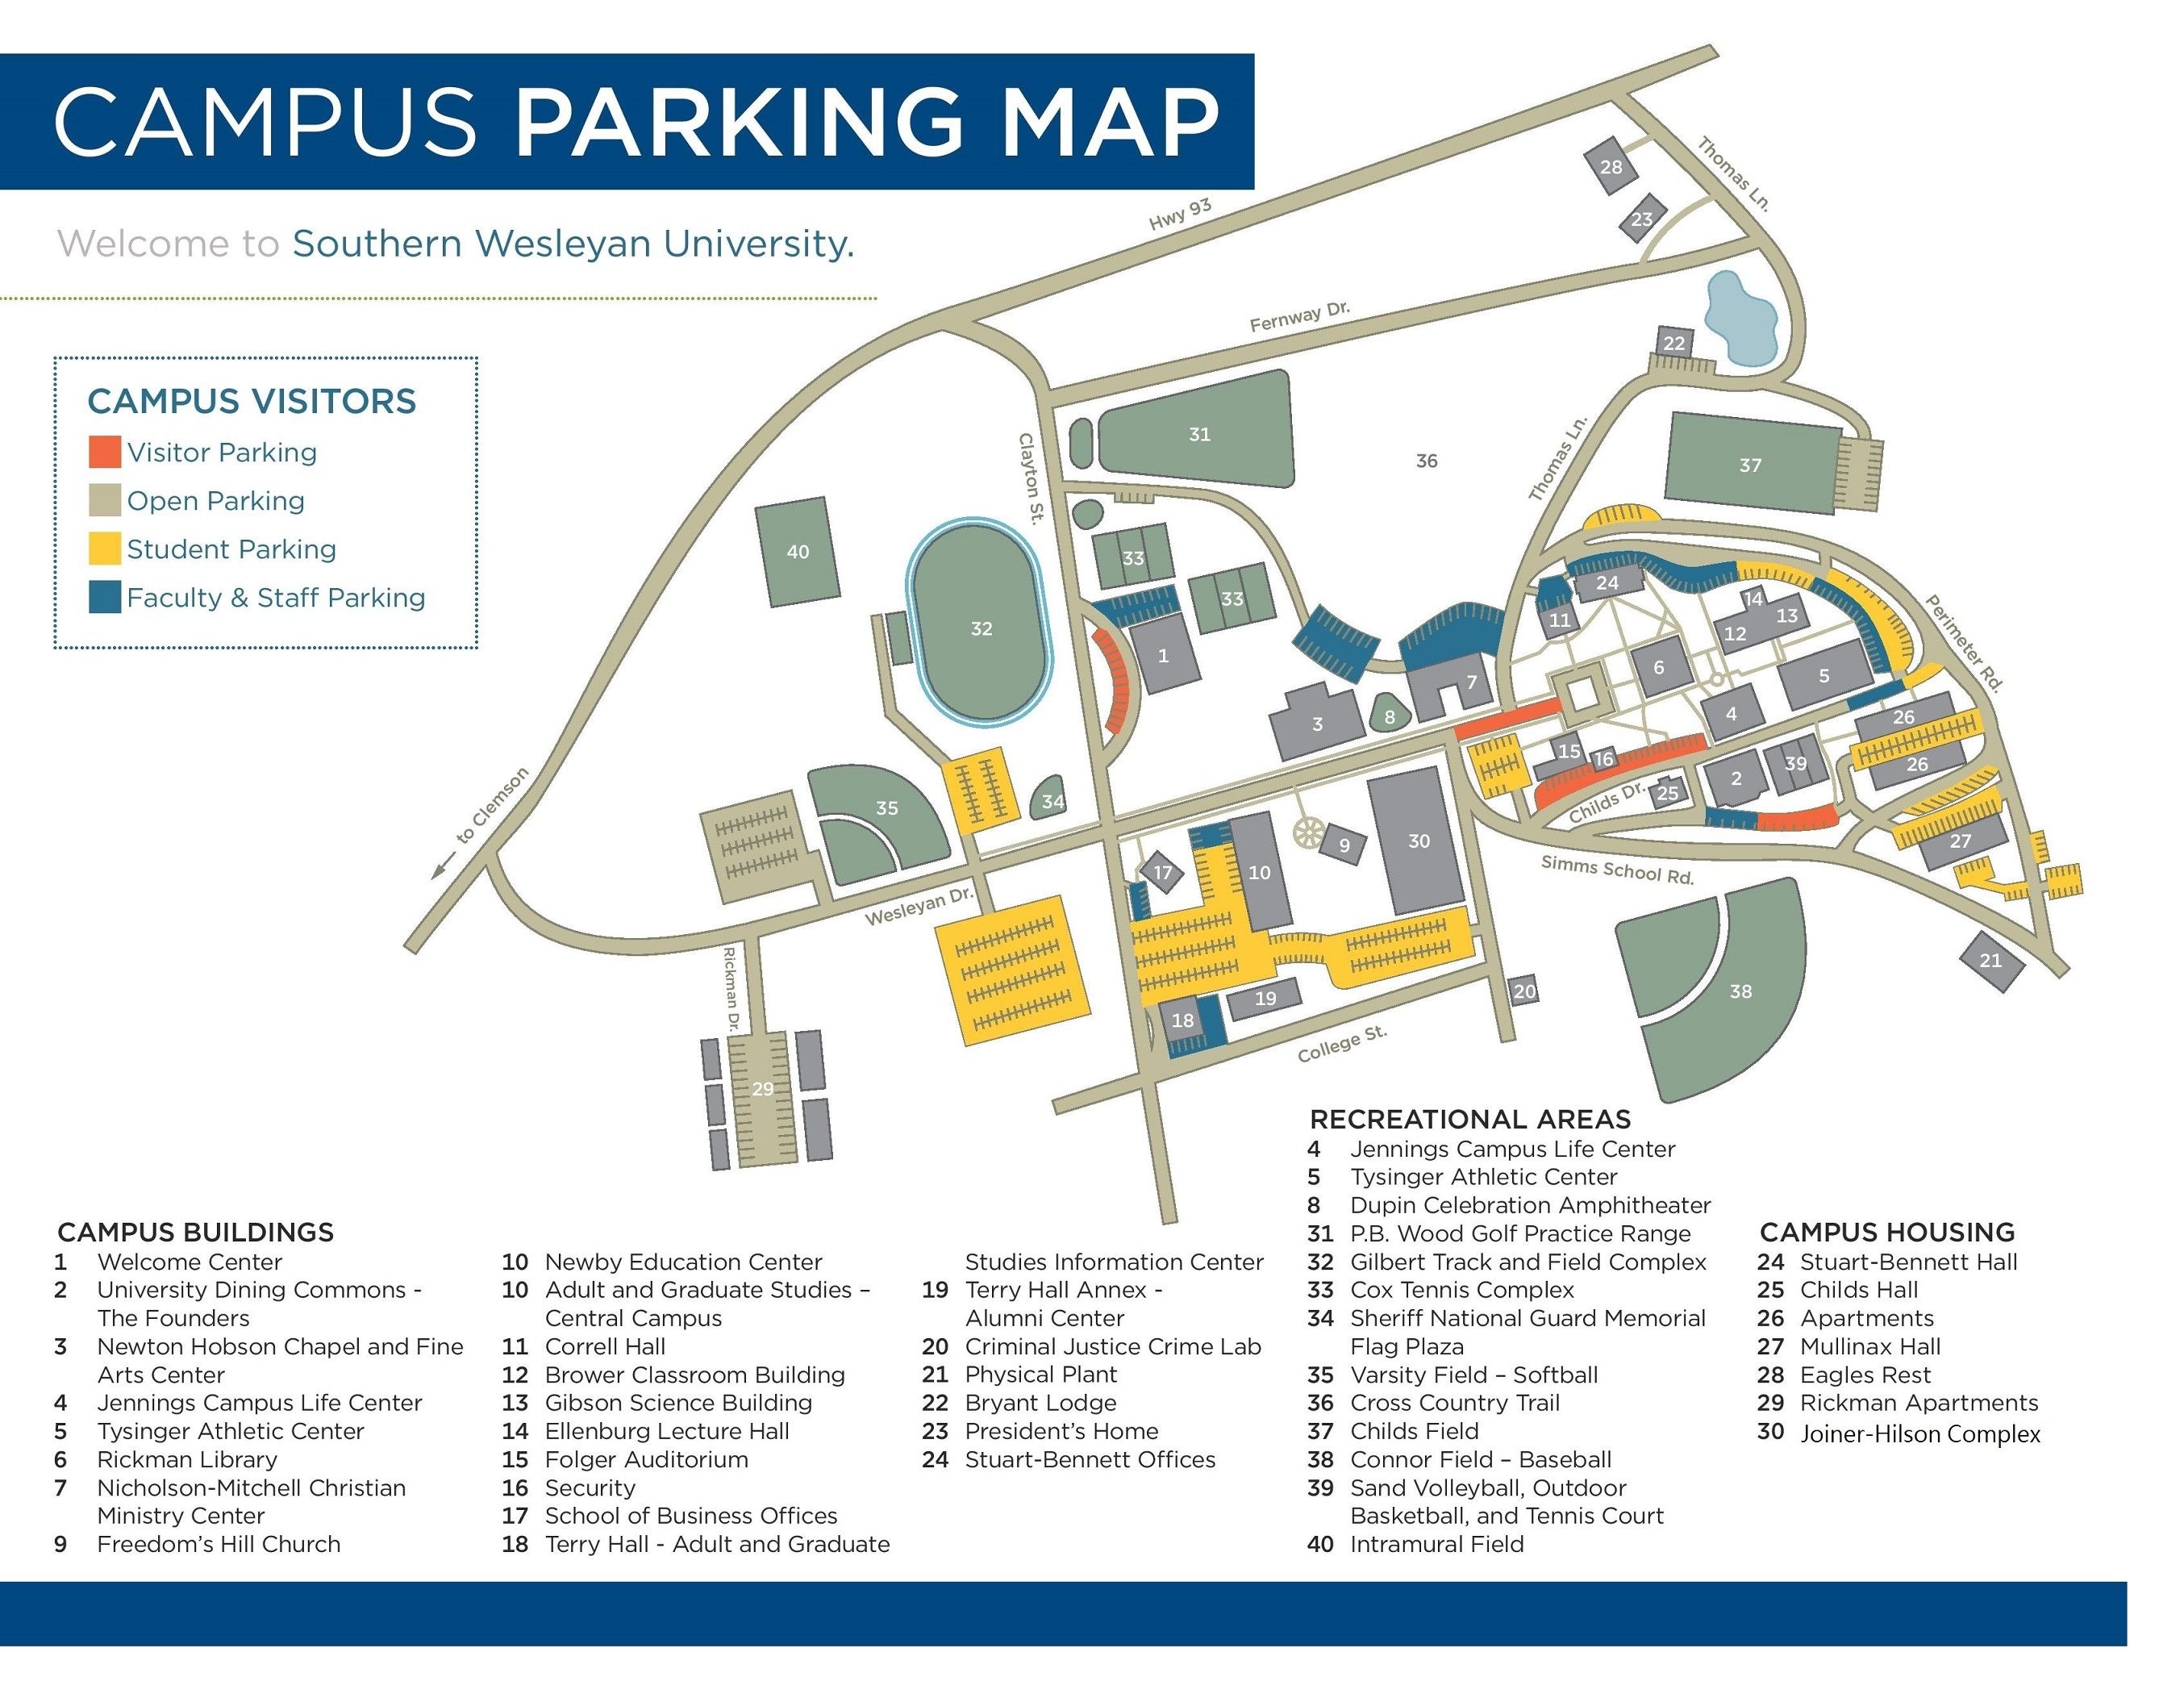 Parking - Main View | Parking Information and Vehicle ... on transportation center, book center, water center,